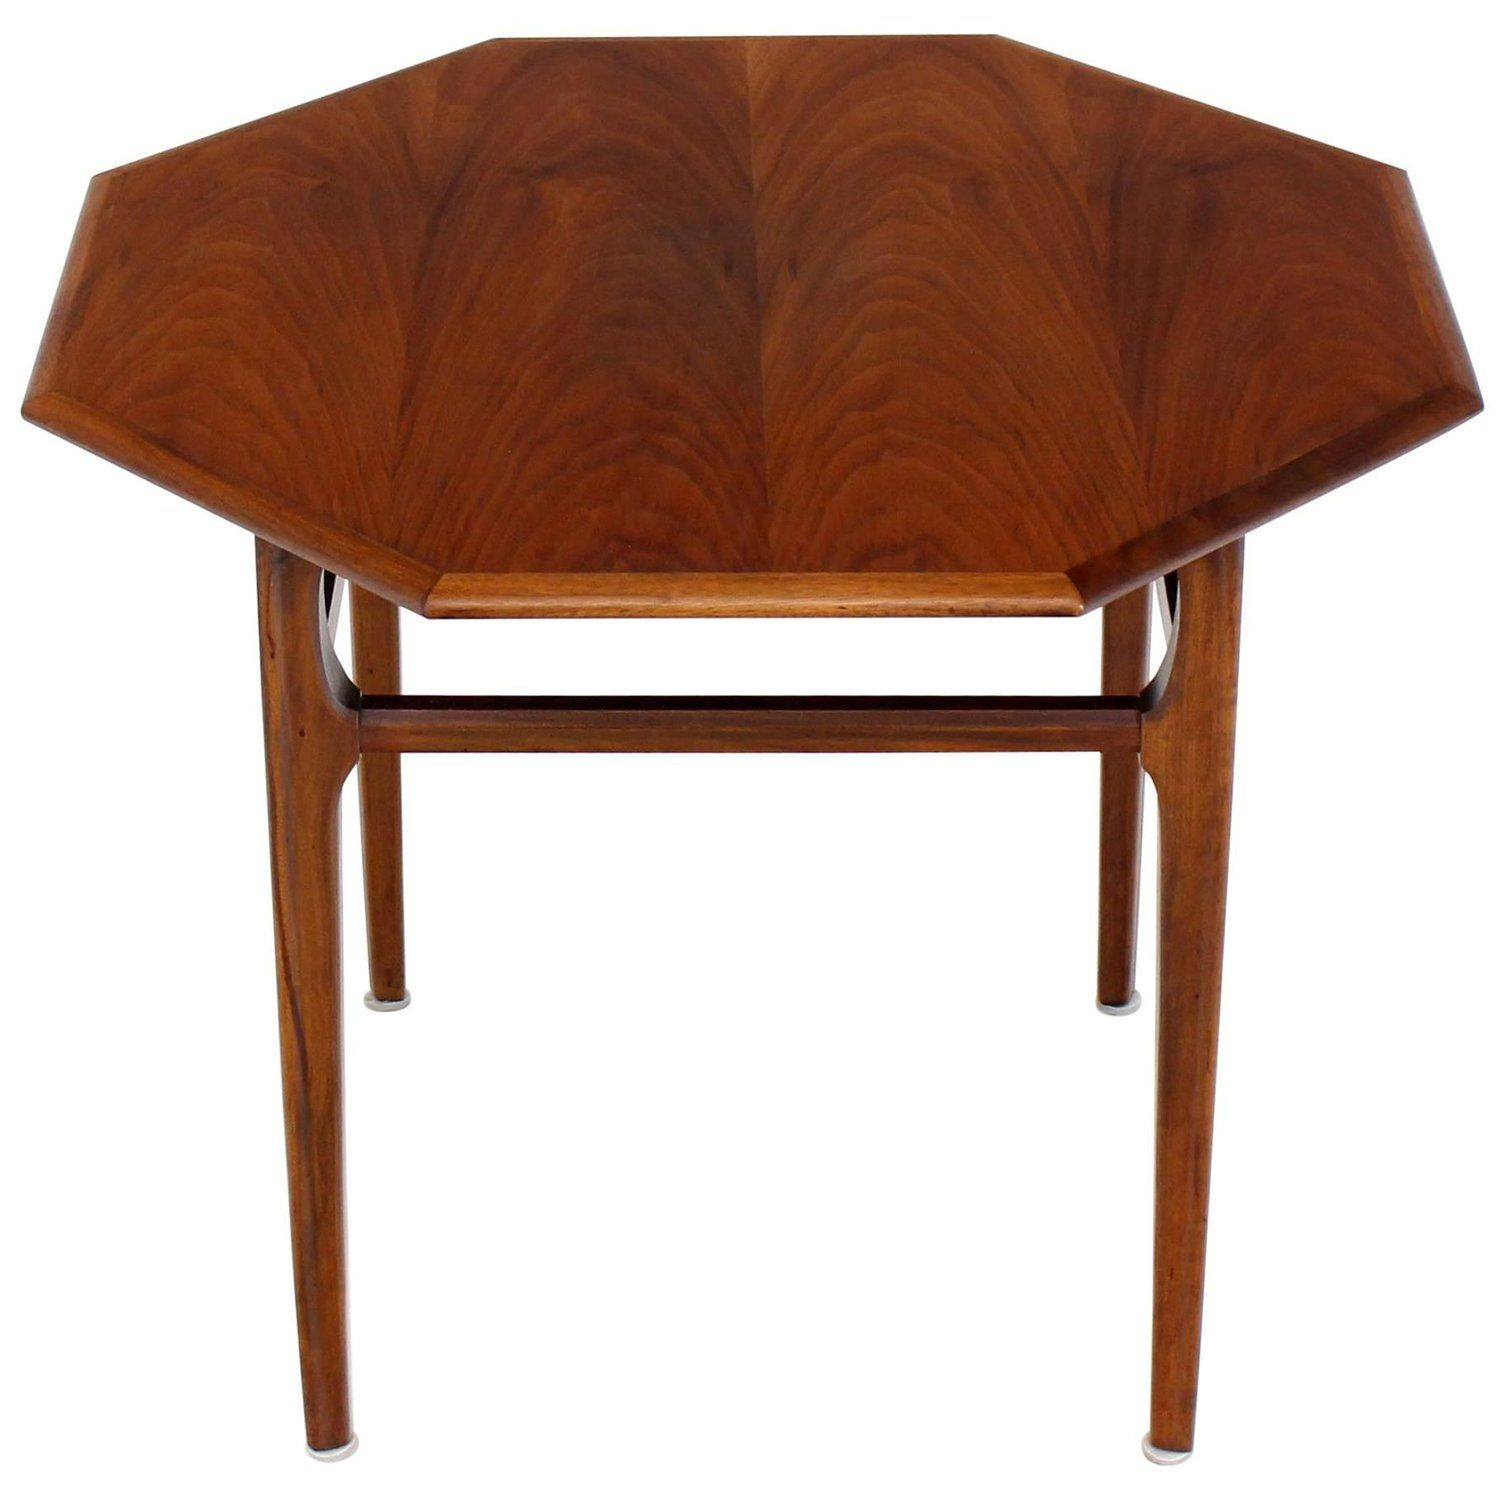 Oiled Walnut Octagon Shape Pedestal Side Table Stand